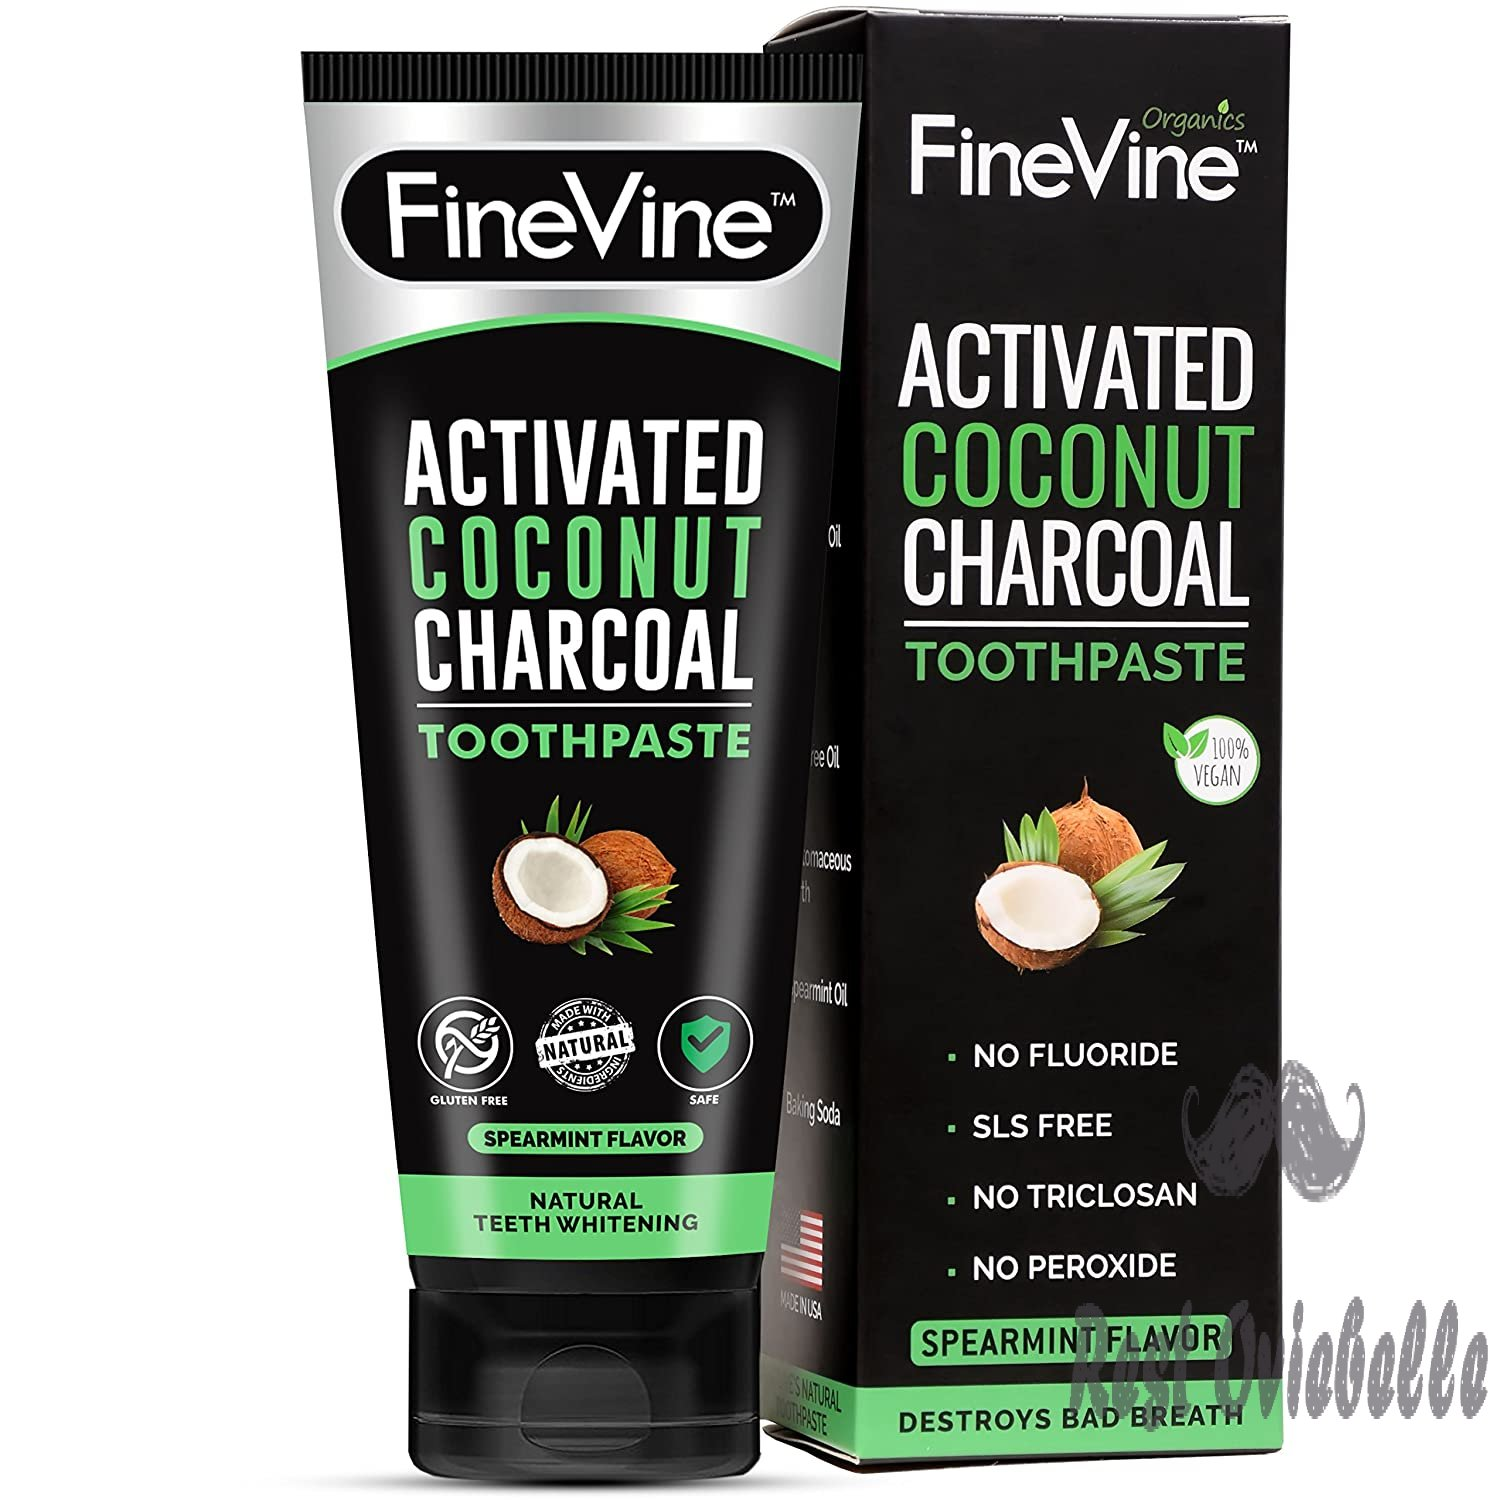 100% Natural Charcoal Teeth Whitening